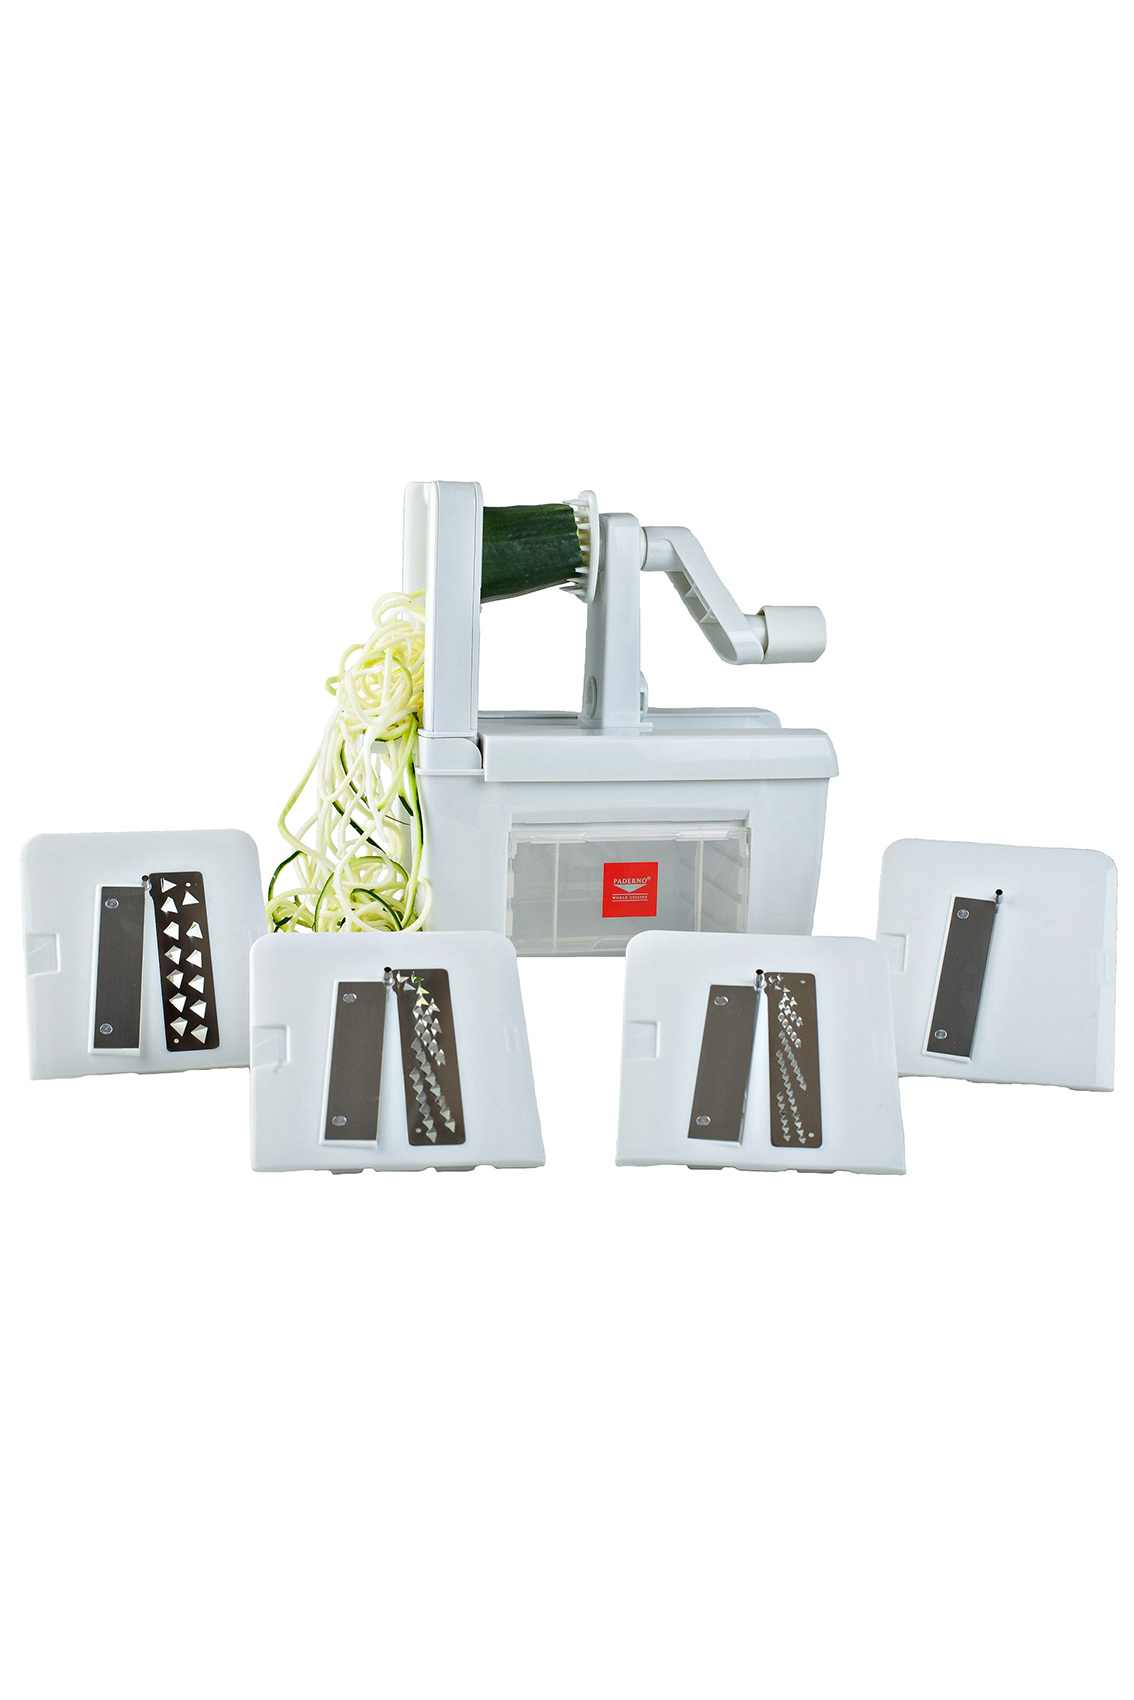 Unique Gift Ideas Real Simple Circuit Board Desk Clock Uncommongoods Paderno 4 Blade Spiralizer